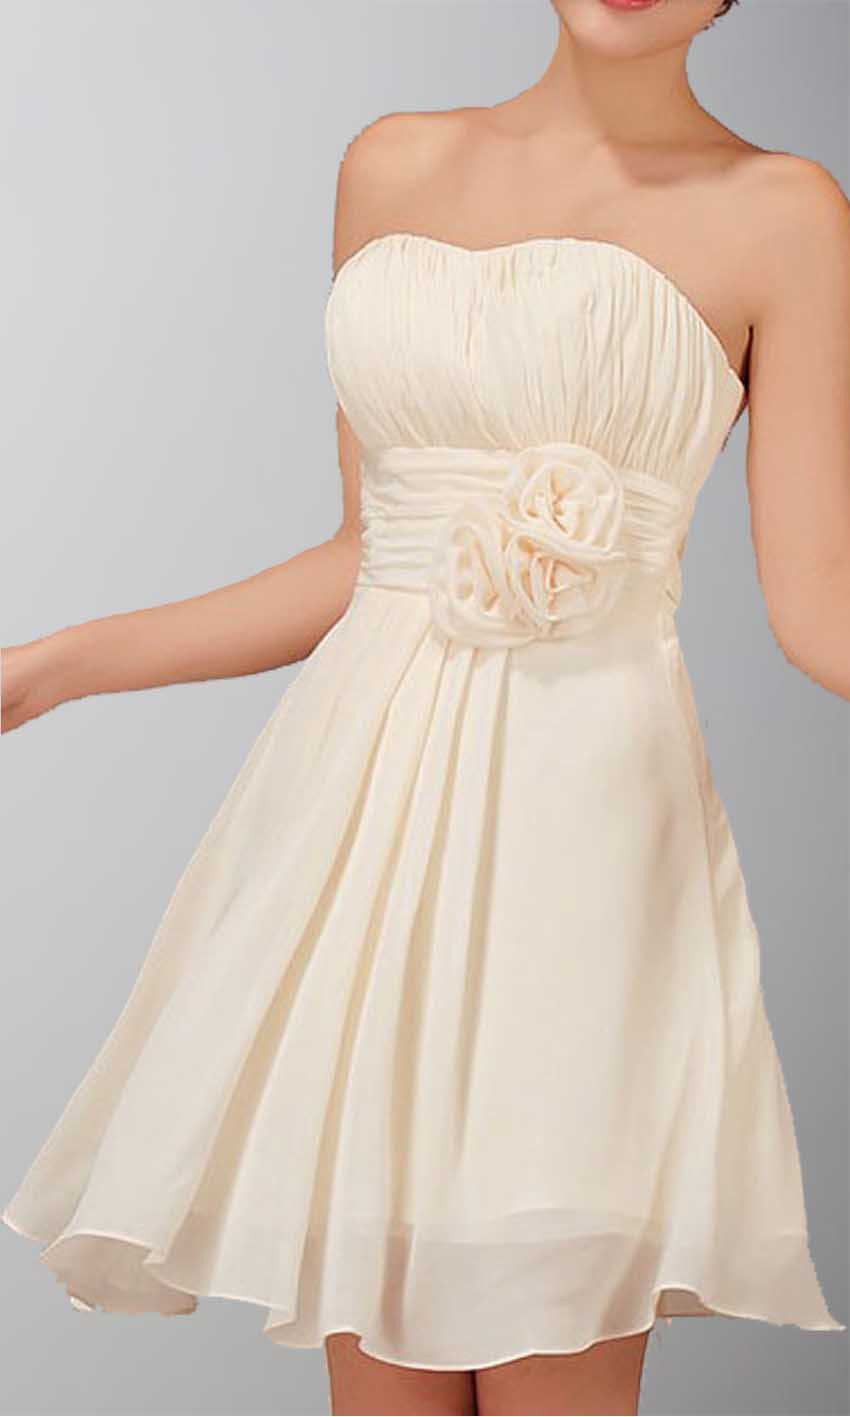 Simple Graceful Pleated Homecoming Dress KSP014 [KSP014] - £78.00 : Cheap Prom Dresses Uk, Bridesmaid Dresses, 2014 Prom & Evening Dresses, Look for cheap elegant prom dresses 2014, cocktail gowns, or dresses for special occasions? kissprom.co.uk offers various bridesmaid dresses, evening dress, free shipping to UK etc.